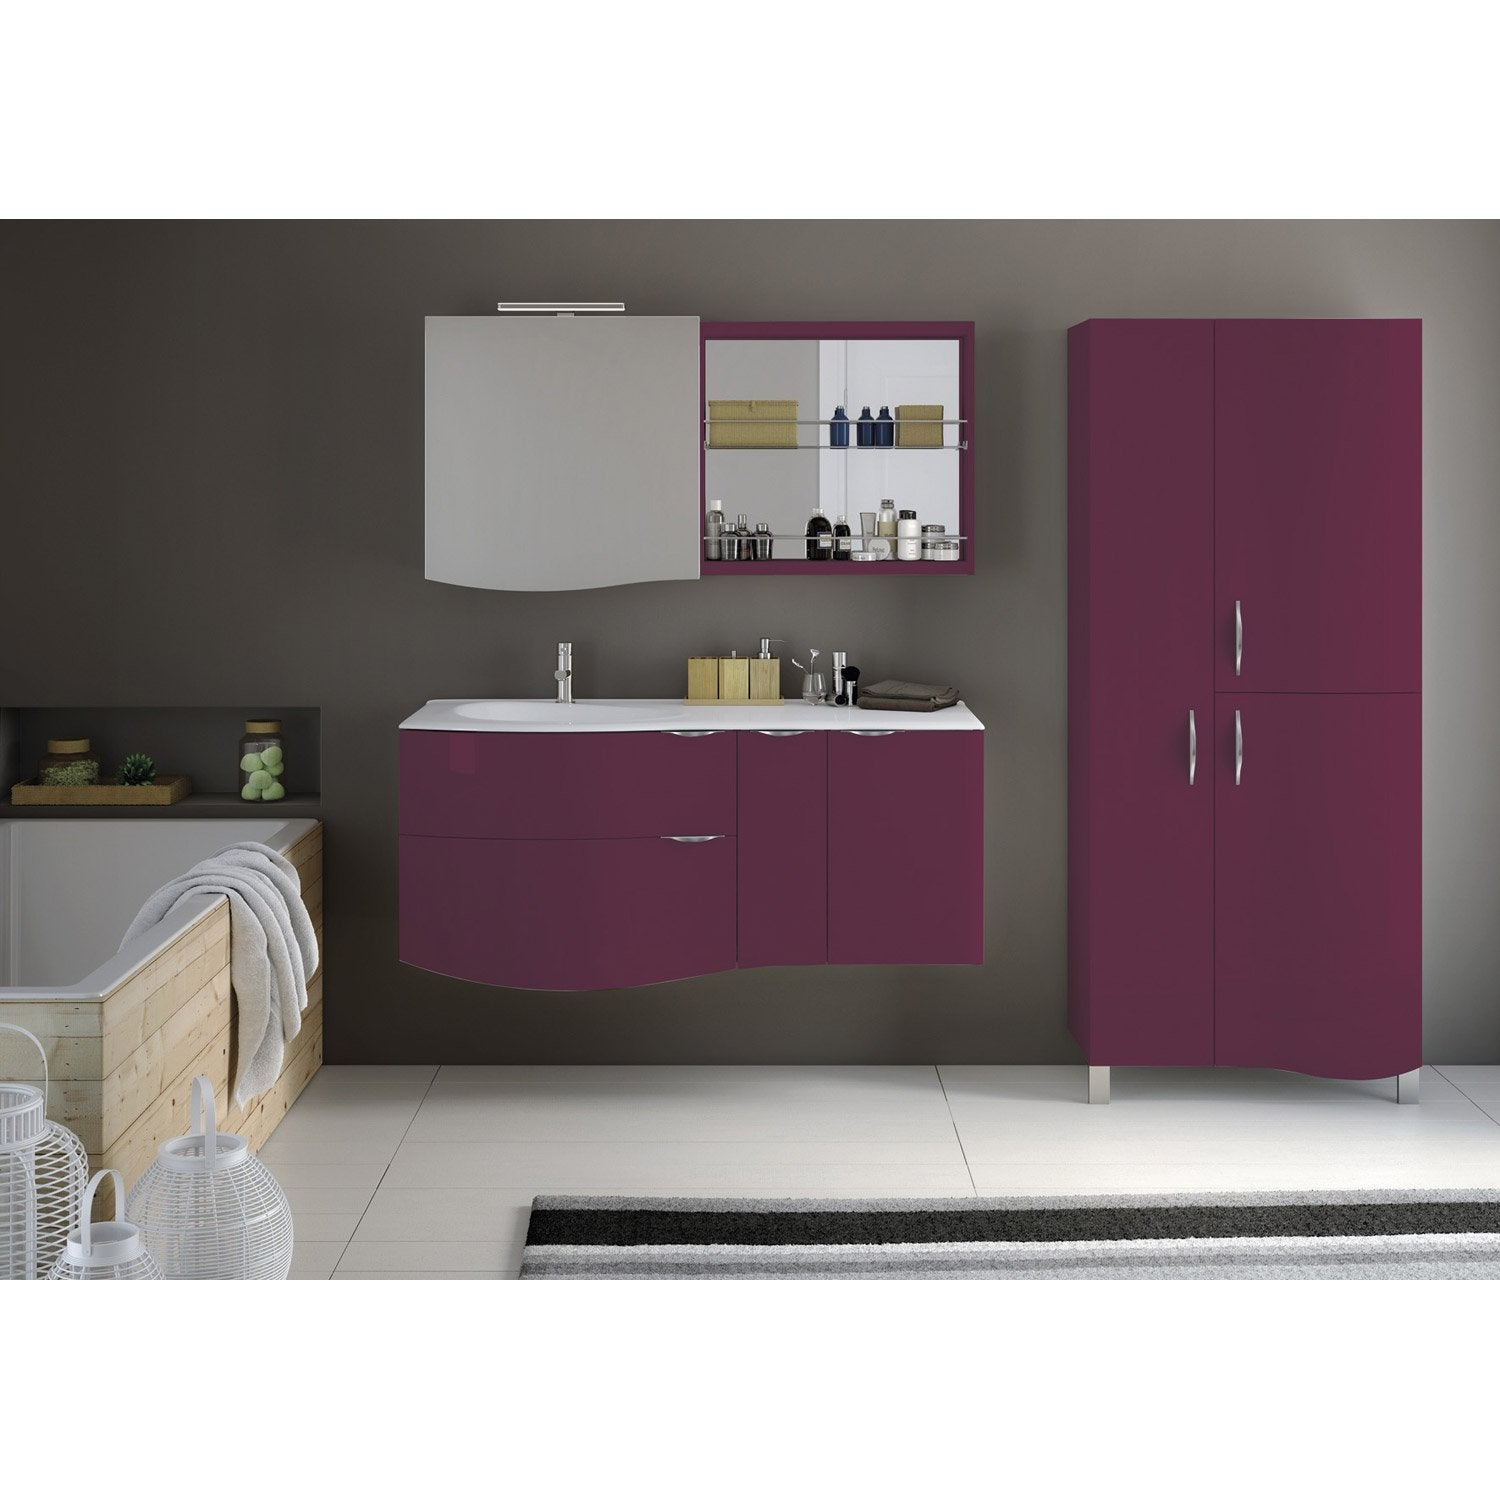 meuble de salle de bains plus de 120 rose violet elegance leroy merlin. Black Bedroom Furniture Sets. Home Design Ideas